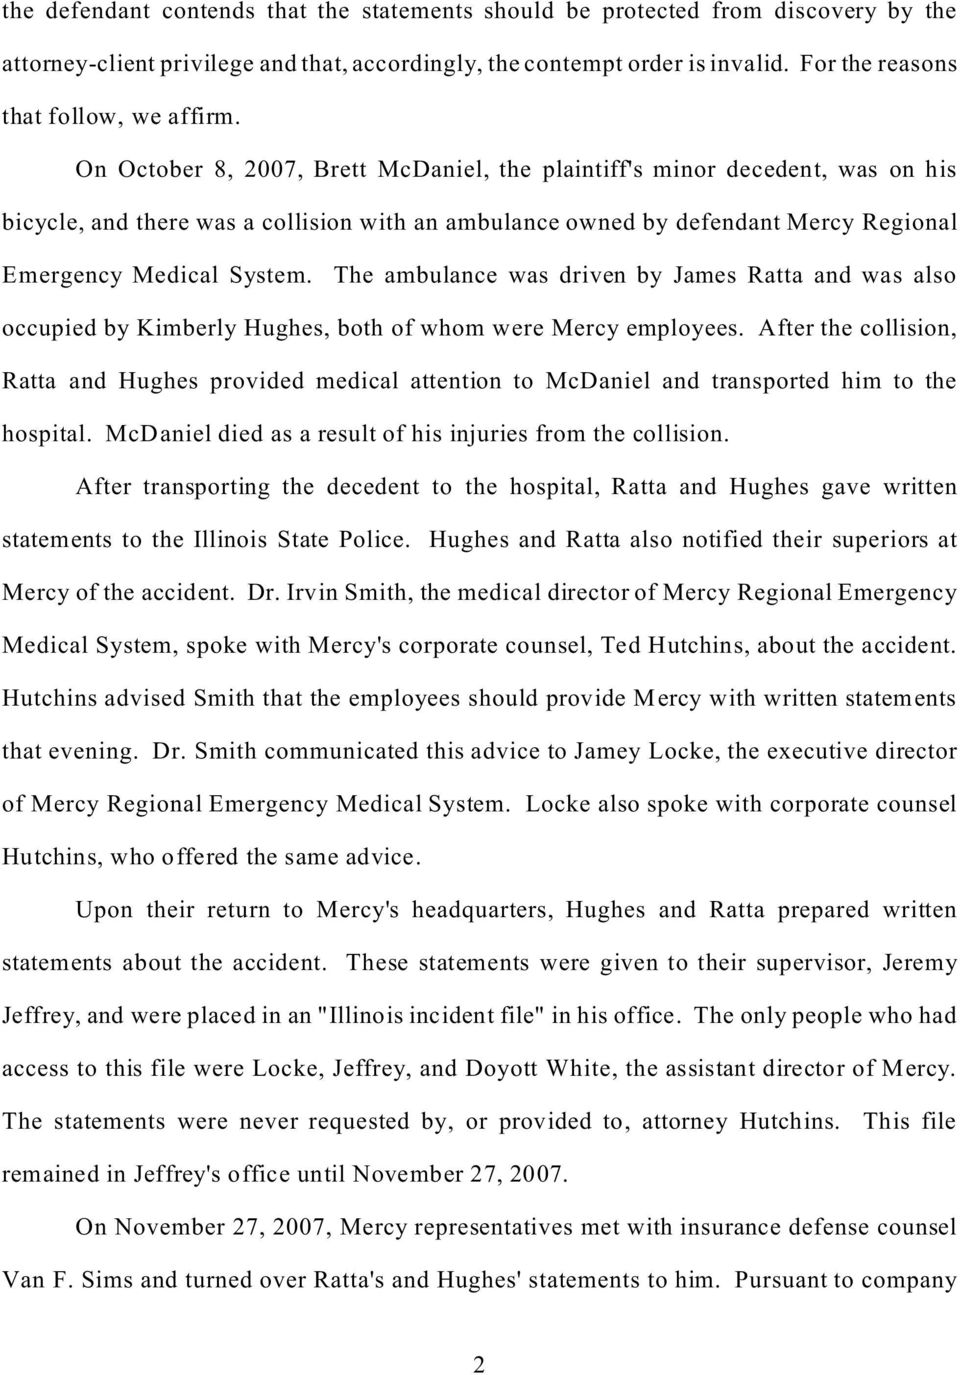 On October 8, 2007, Brett McDaniel, the plaintiff's minor decedent, was on his bicycle, and there was a collision with an ambulance owned by defendant Mercy Regional Emergency Medical System.